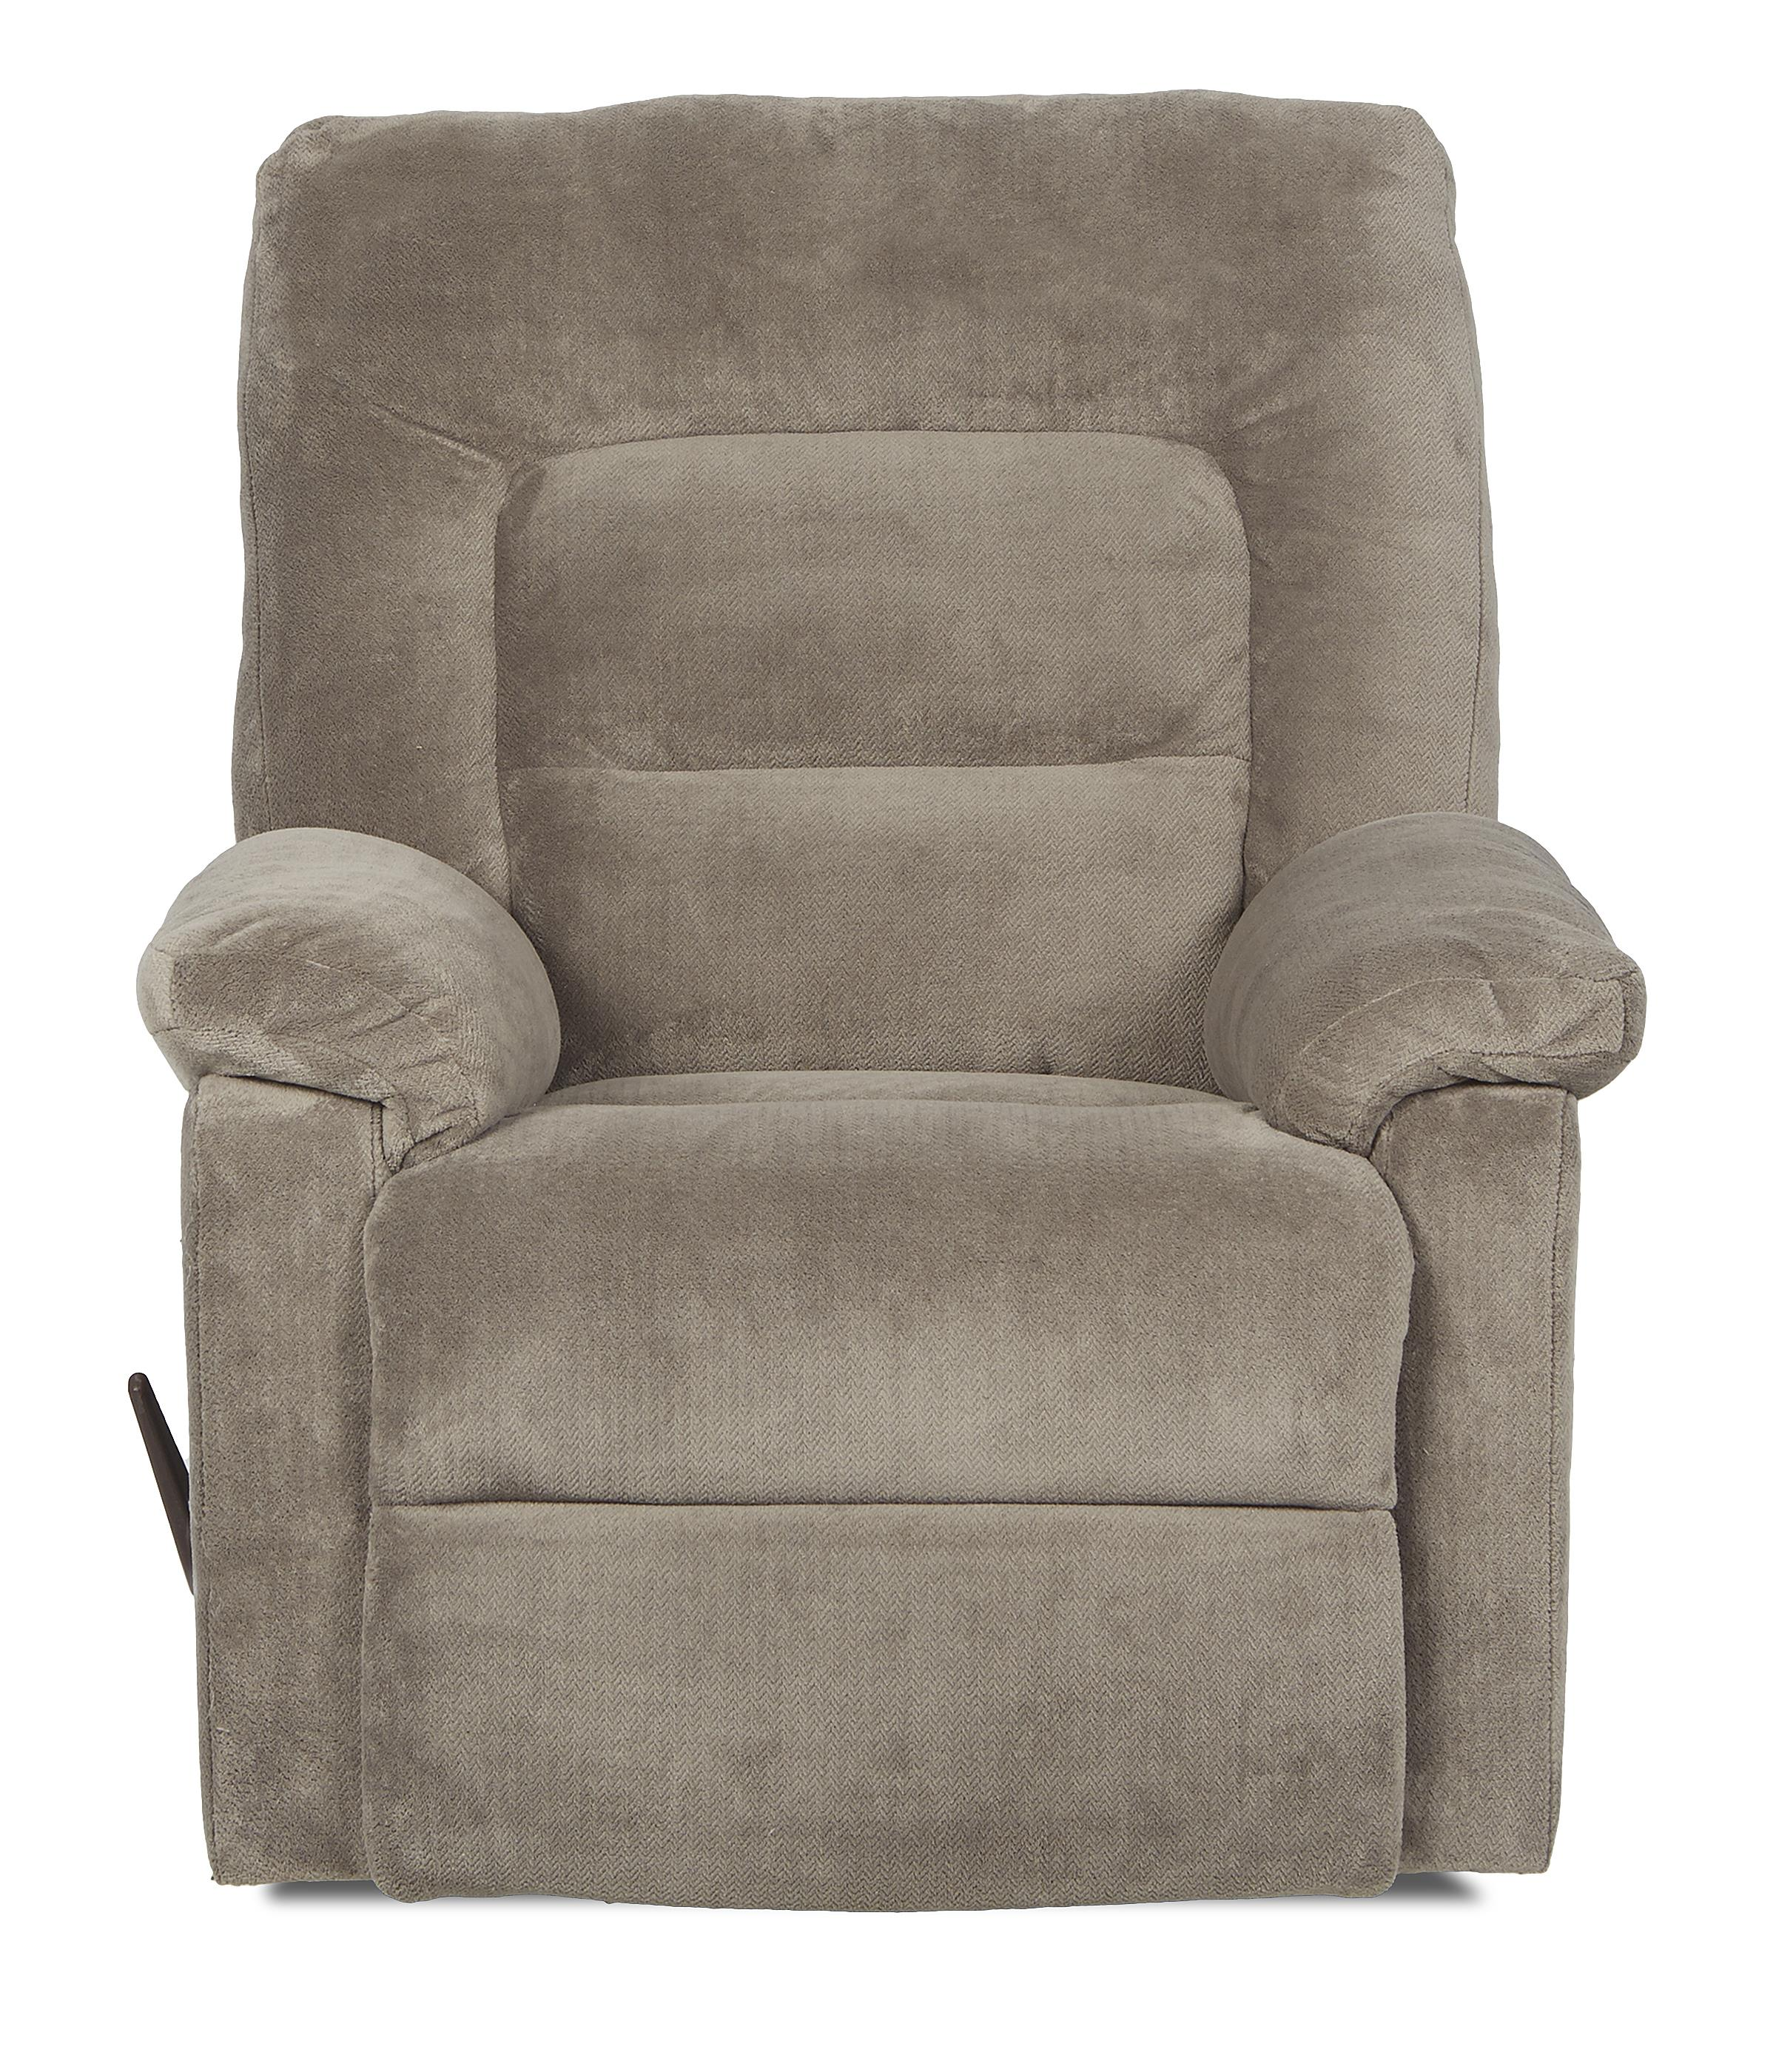 Klaussner Landon Casual Reclining Rocking Chair - Item Number: 86503H RRC-RoxxCobblestone